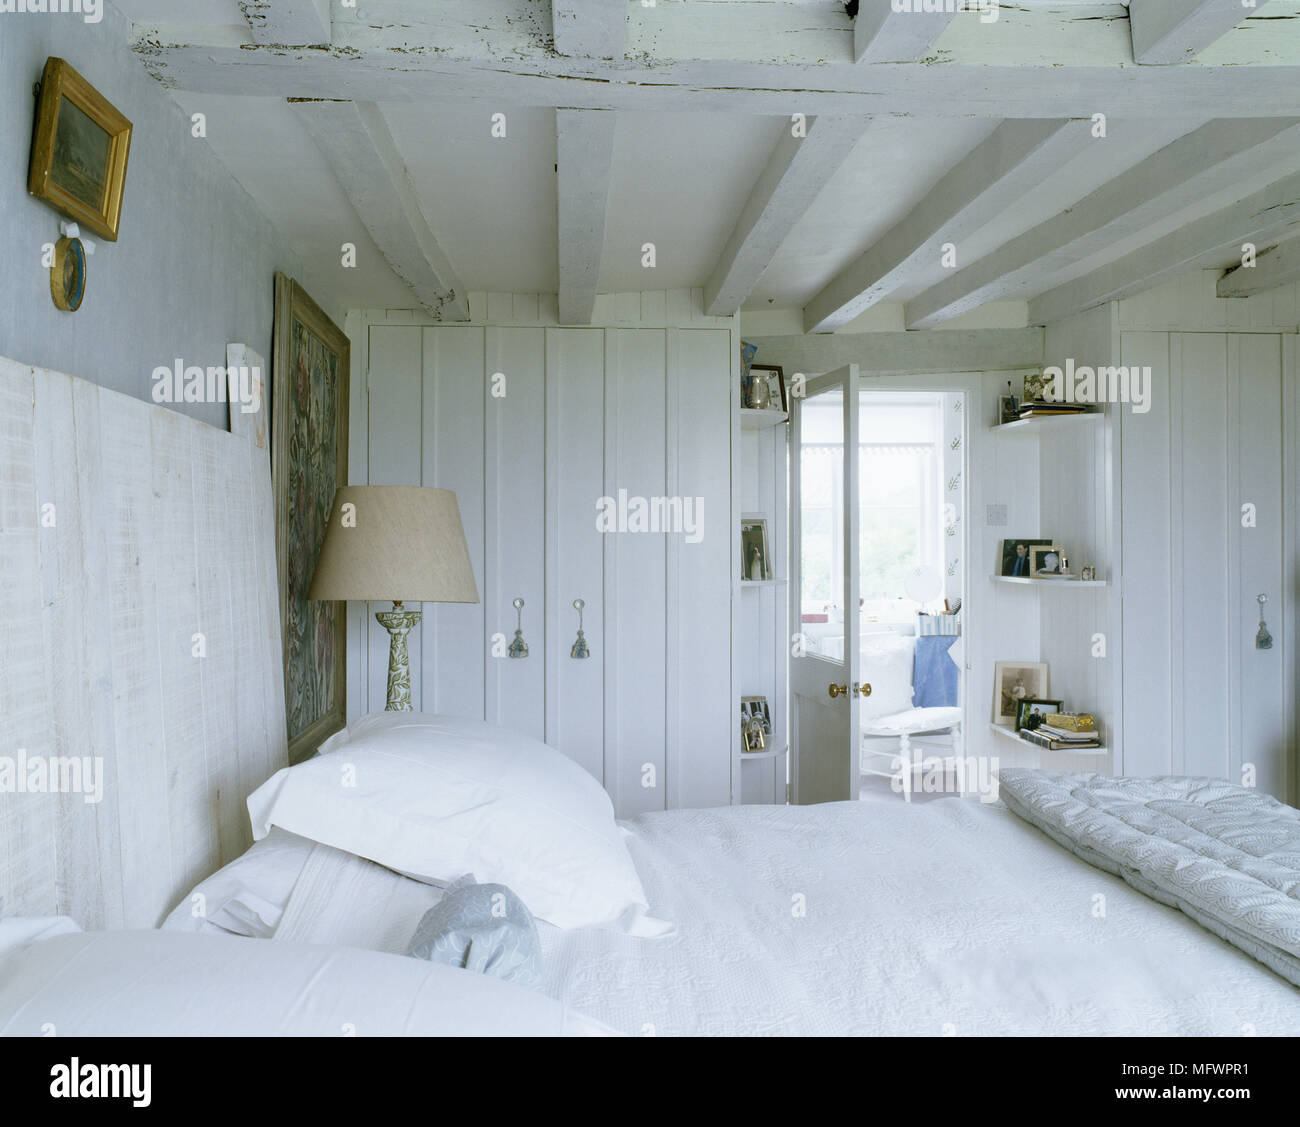 Rustic Bedroom With Double Bed With White Linen And Wooden Headboard Next To Artwork And Lamp Stock Photo Alamy